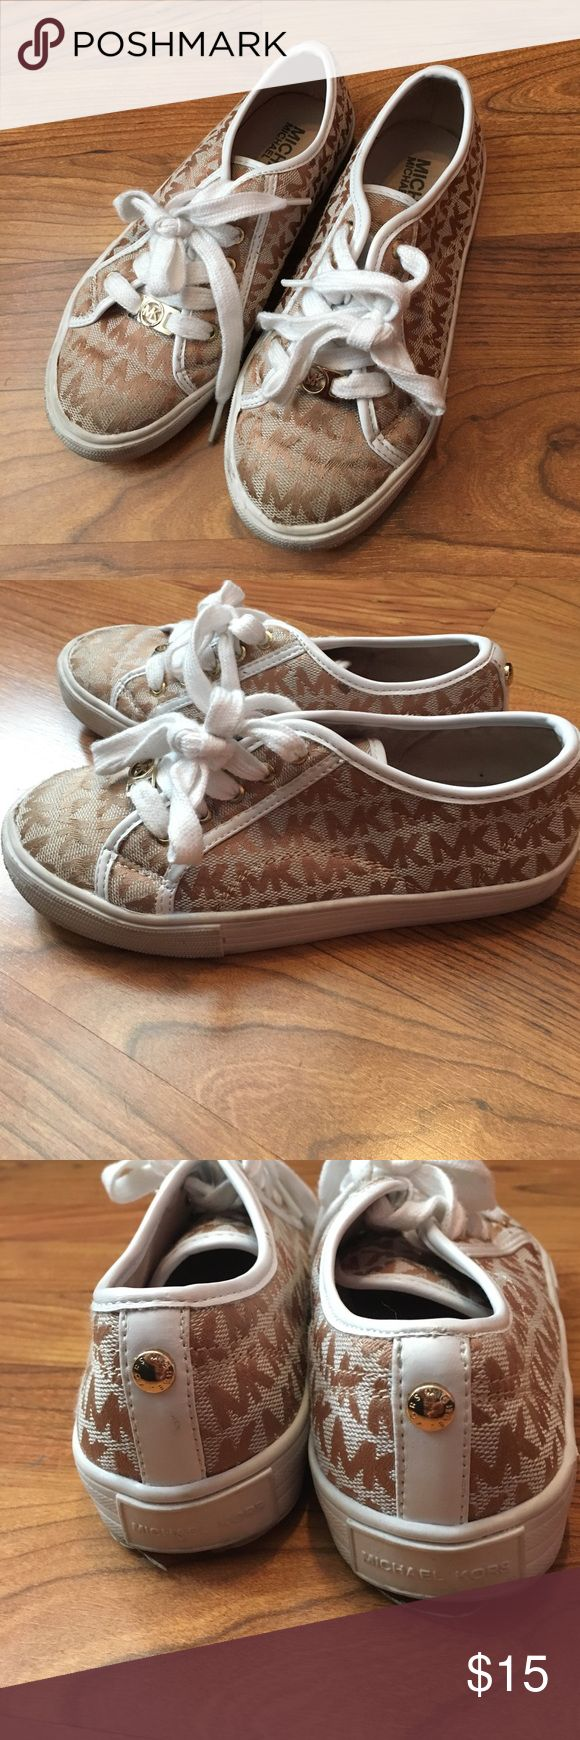 Michael Kors girls tennis size 13.5 Preowned Michael Kors girls tennis shoes size 13.5 Michael Kors Shoes Sneakers